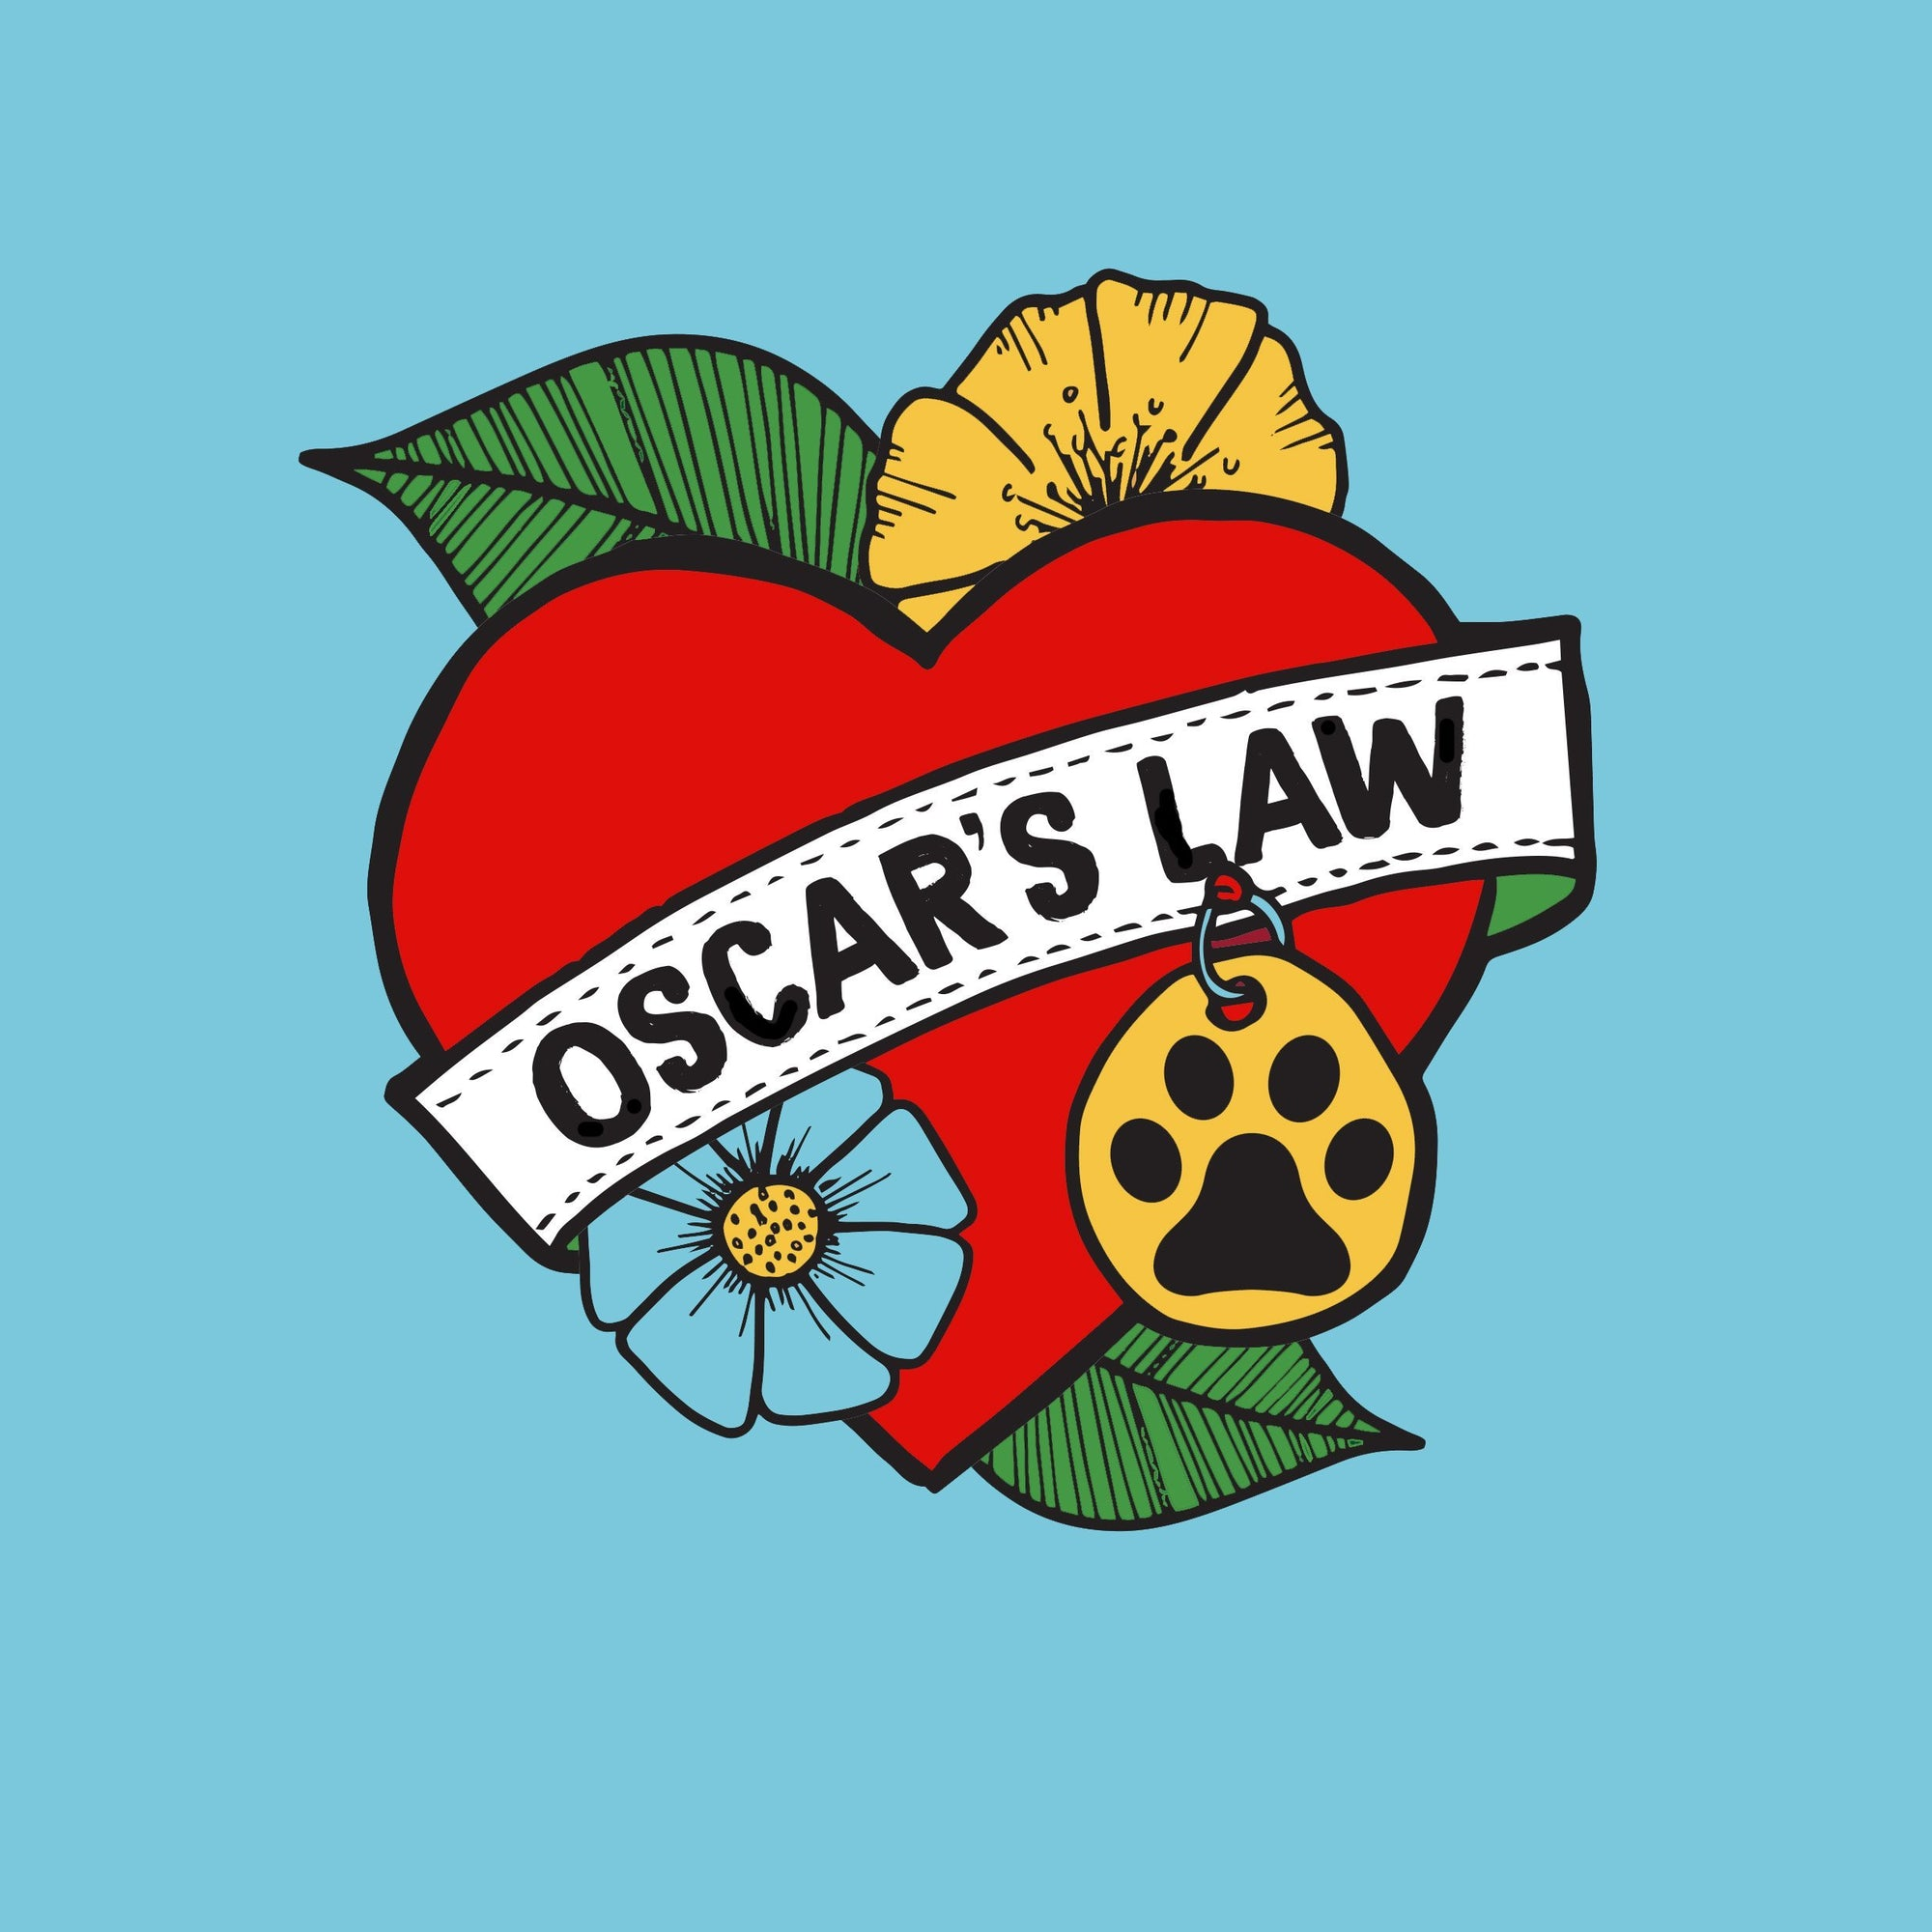 Oscars law patch, patch for dog, dog patch, heart patch, Pethaus,  anti puppy mill, ban puppy farming.